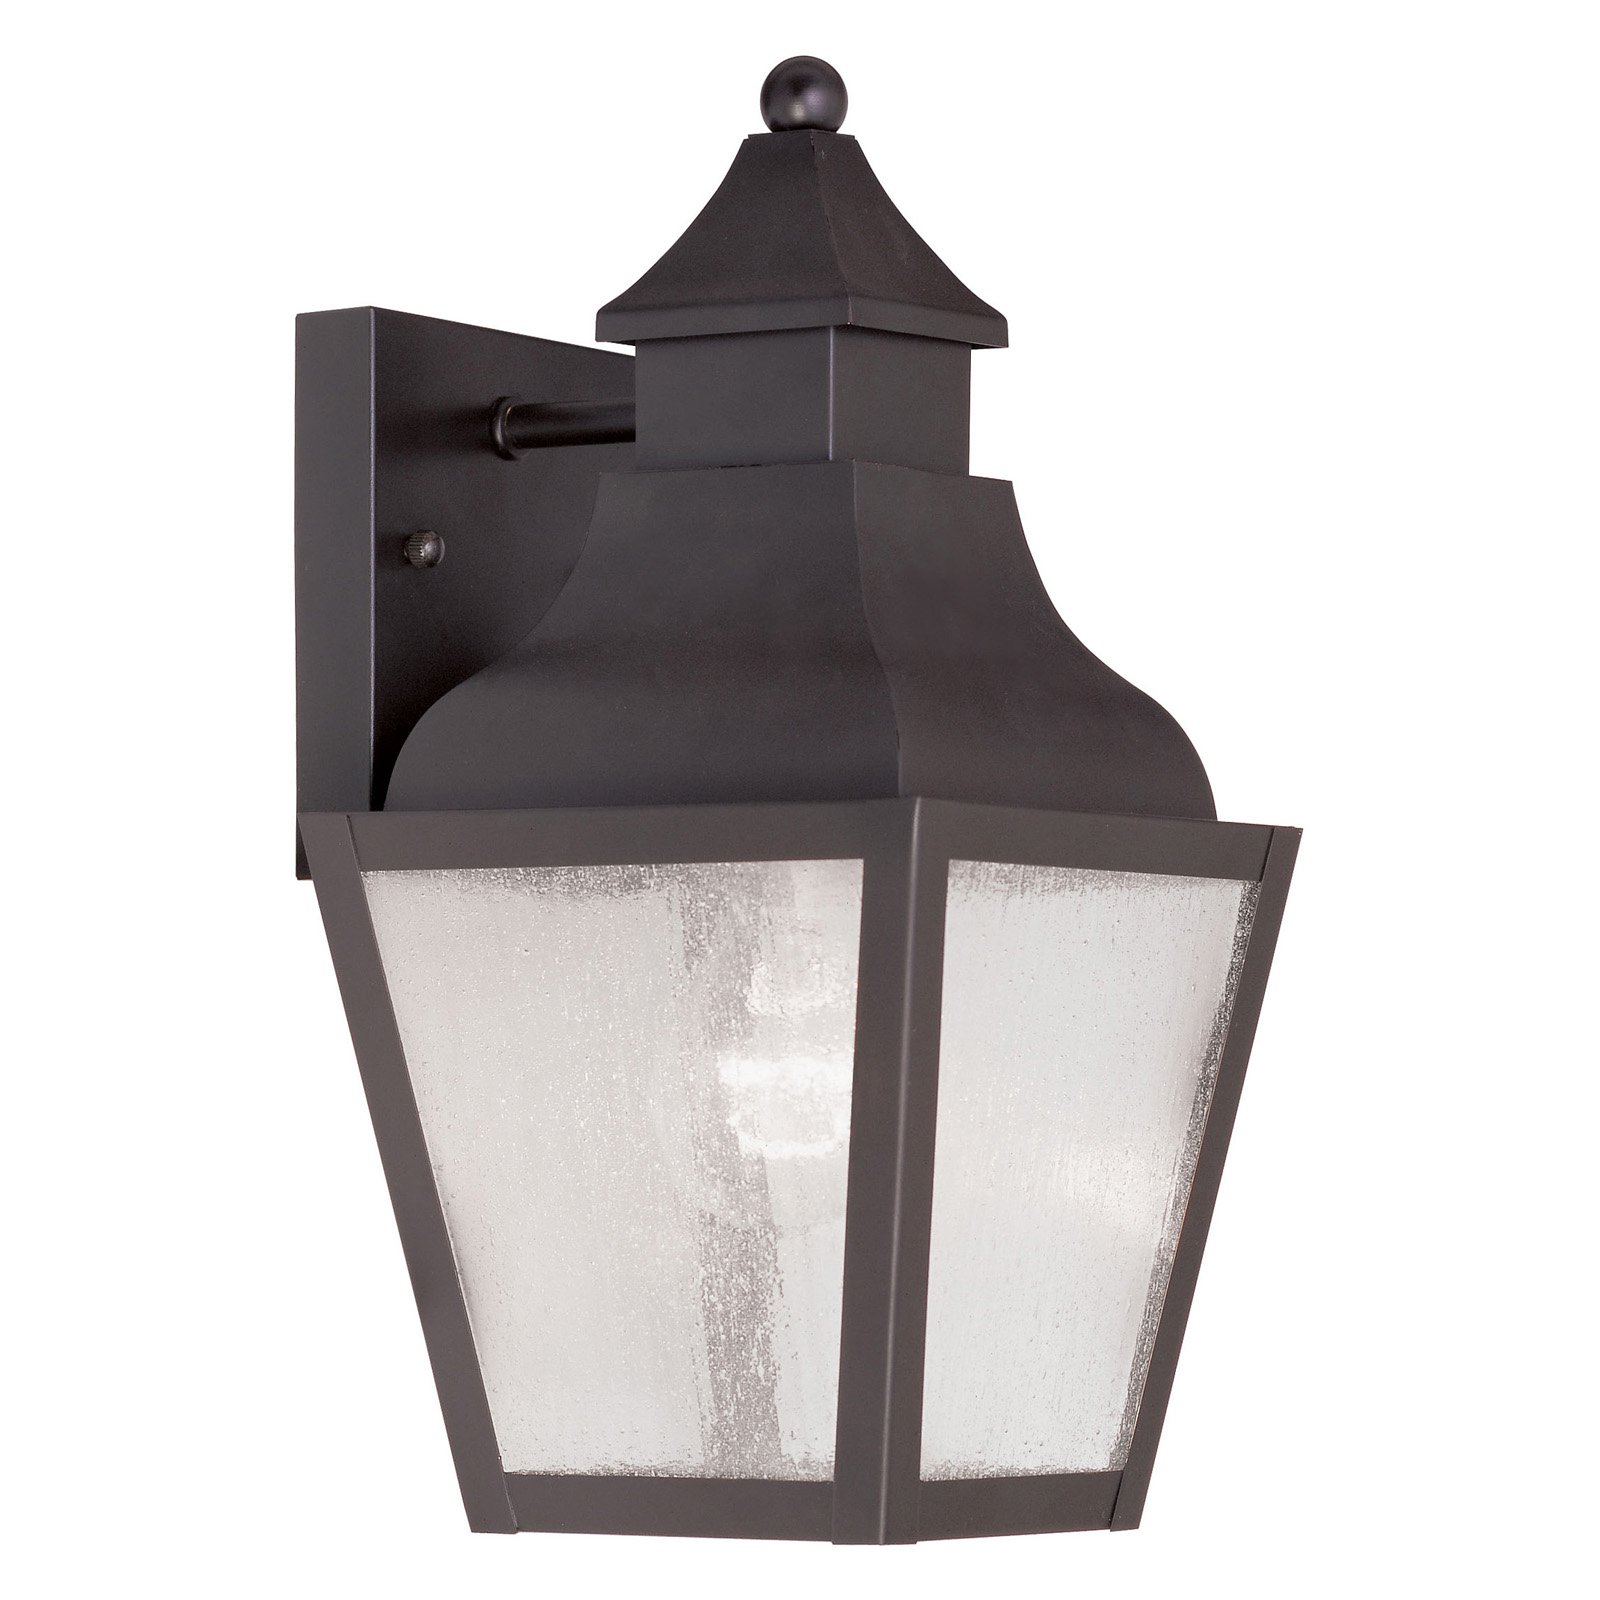 Livex Vernon 2450-07 1-Light Outdoor Wall Lantern in Bronze